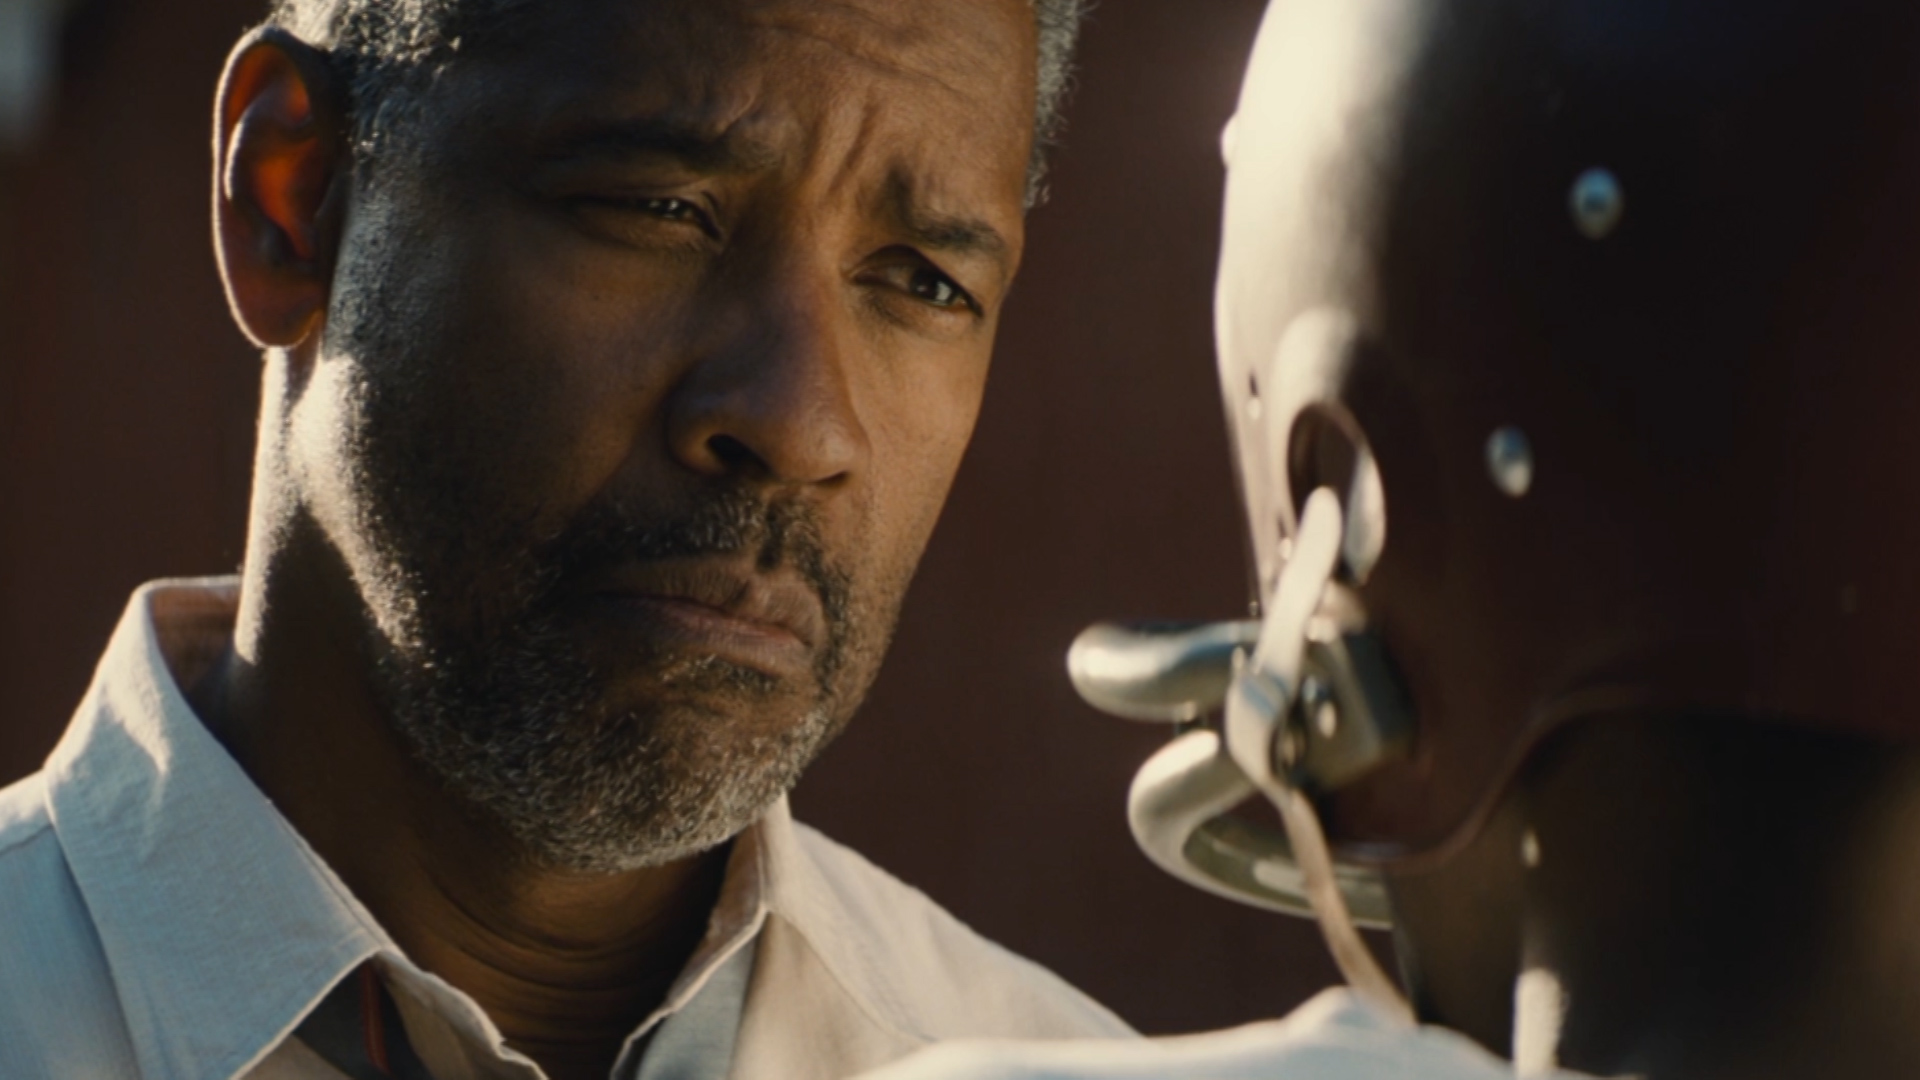 VIDEO: Trailer: 'Fences' with Denzel Washington